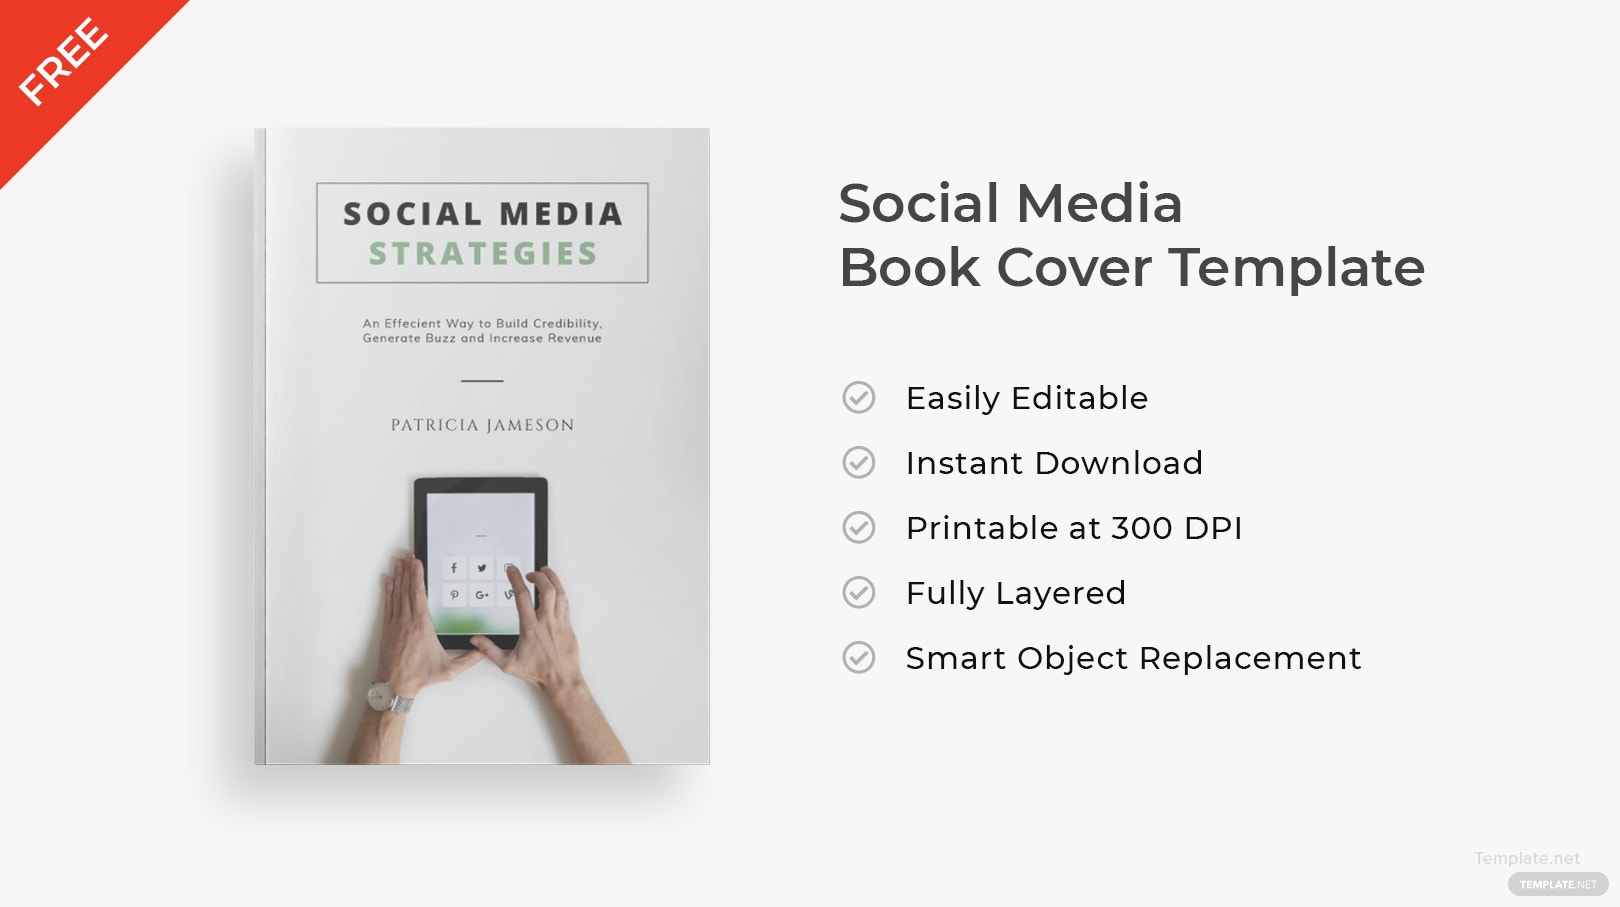 Book Cover Template Adobe Illustrator ~ Free social media book cover template in adobe photoshop